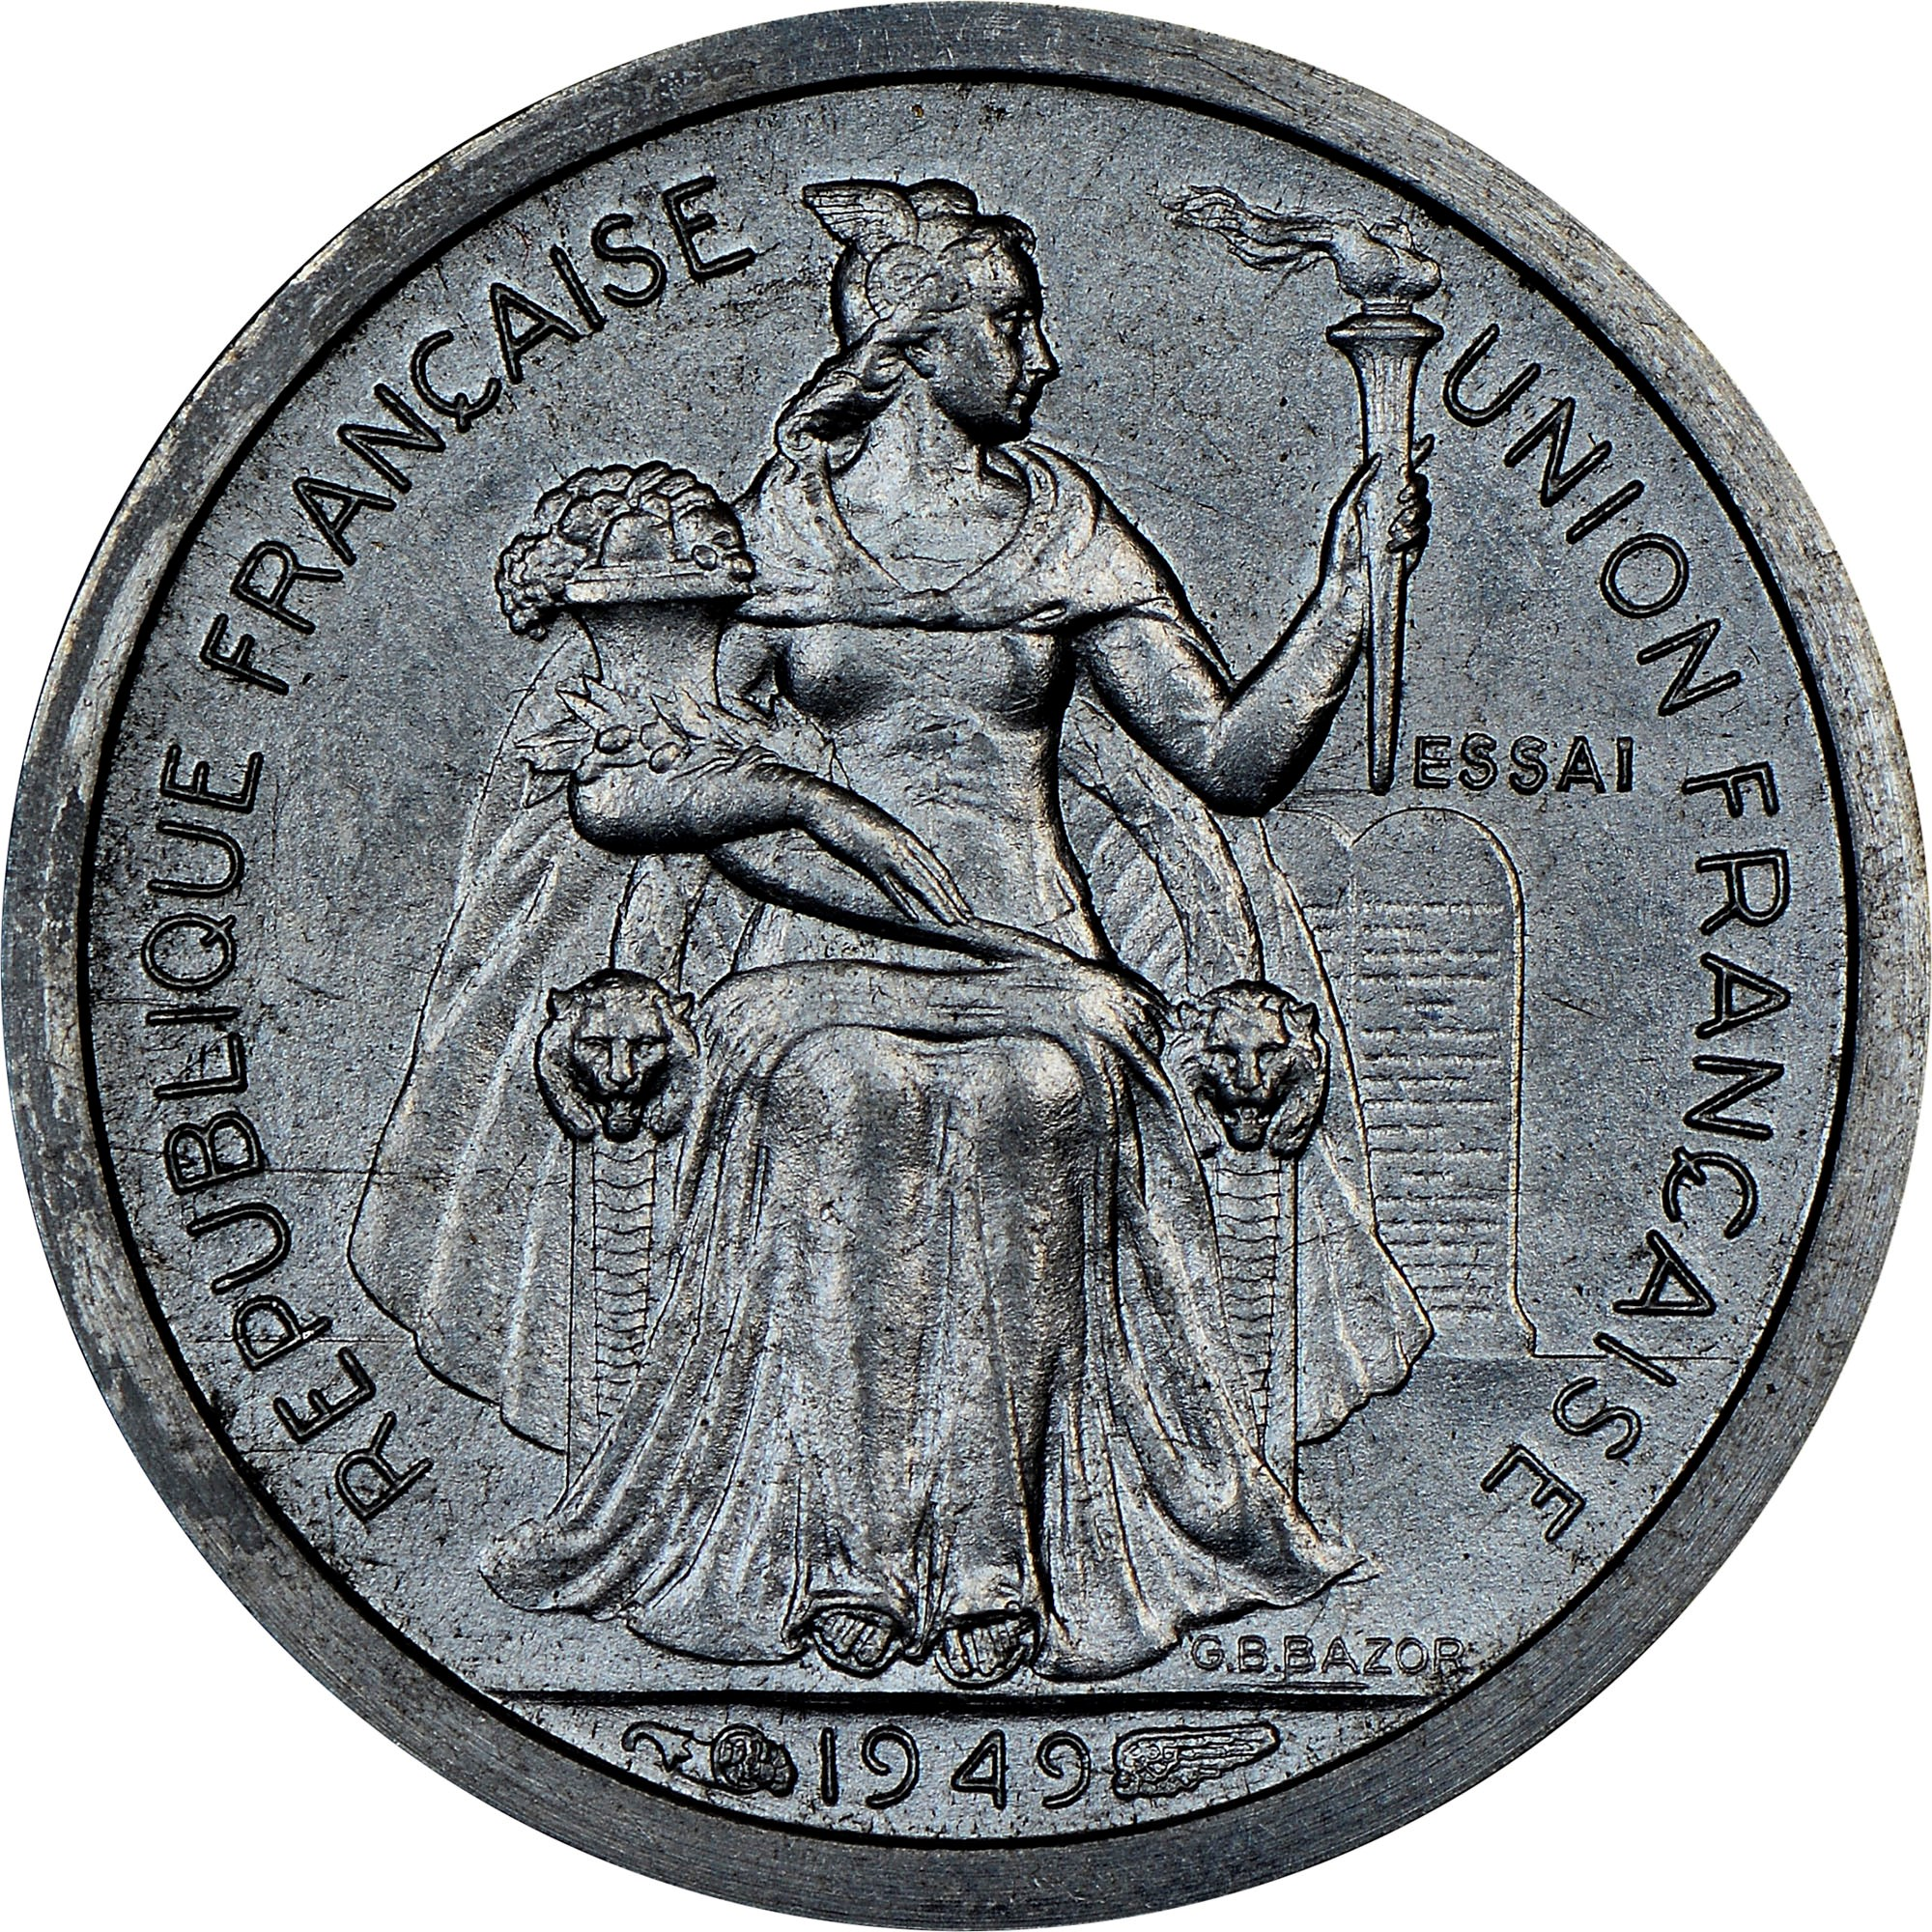 New Caledonia 50 Centimes obverse